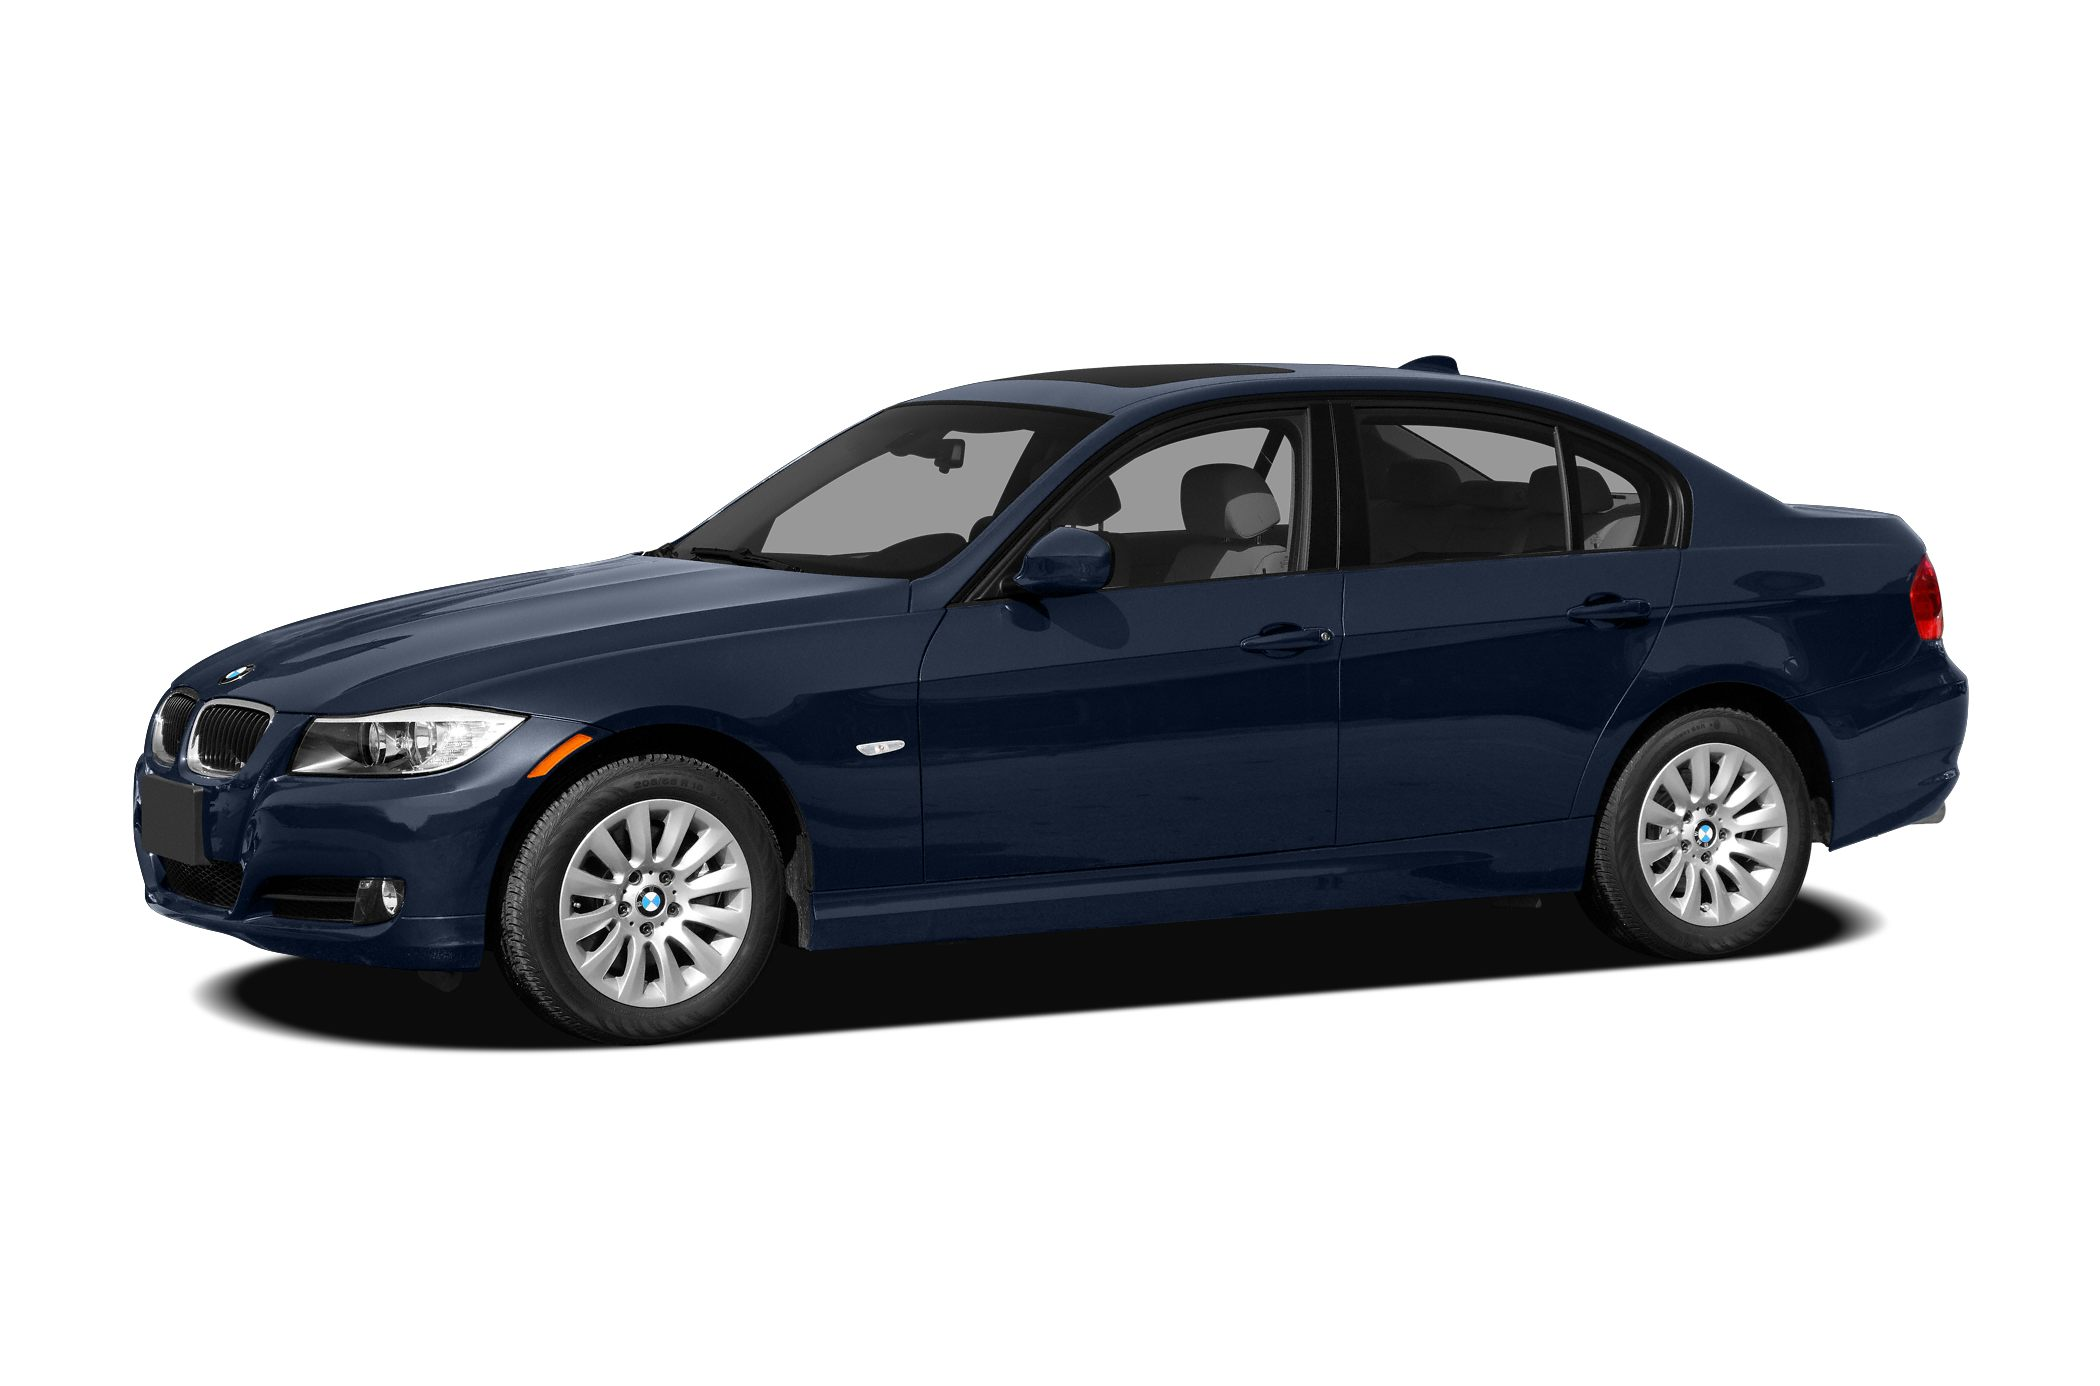 2011 BMW 3 Series 328i WE SELL OUR VEHICLES AT WHOLESALE PRICES AND STAND BEHIND OUR CARS  CO